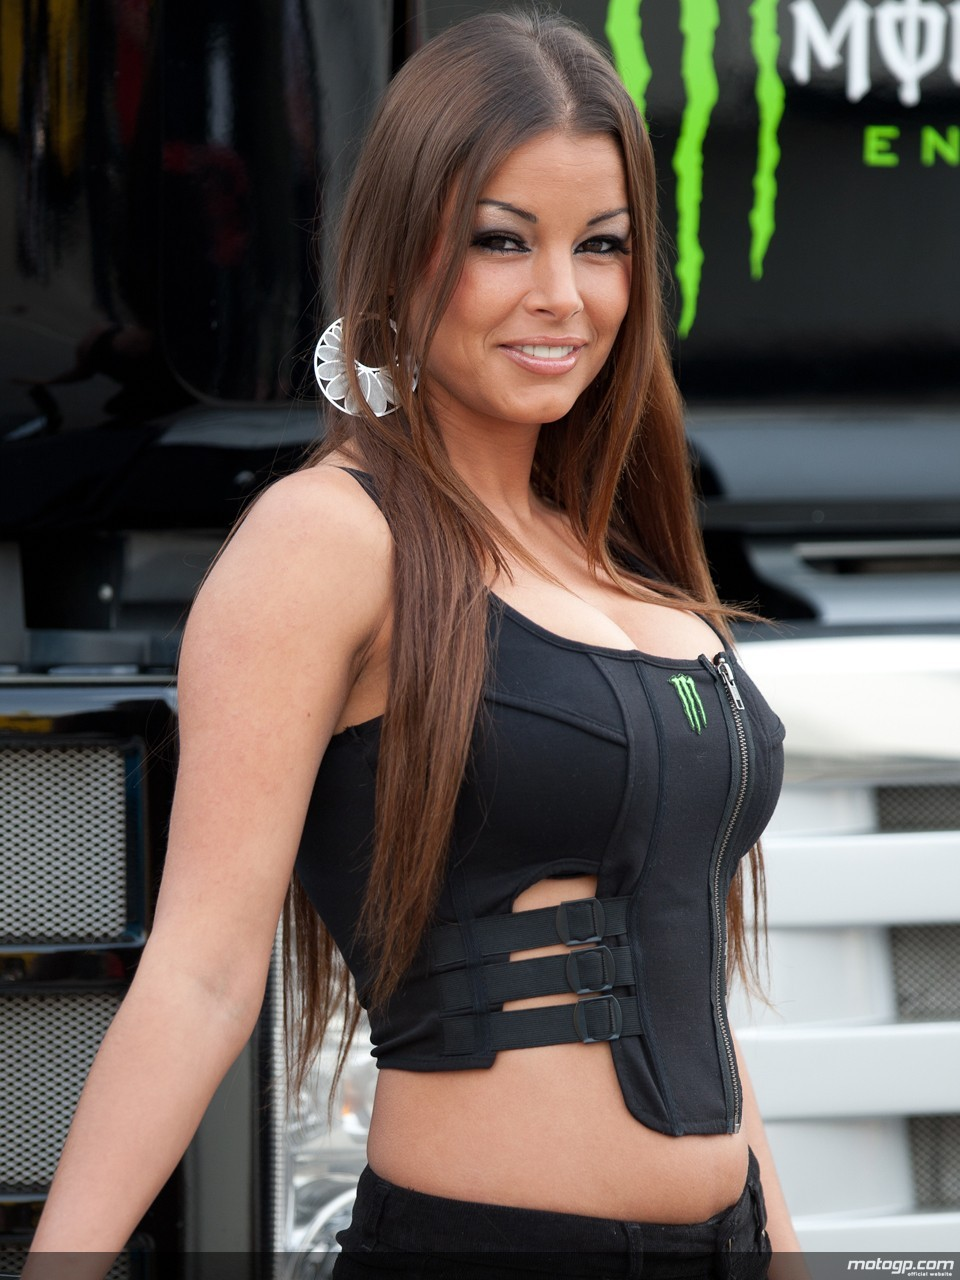 Pictures of Paddock Girls for Moto GP - Japan (2) ~ Just A